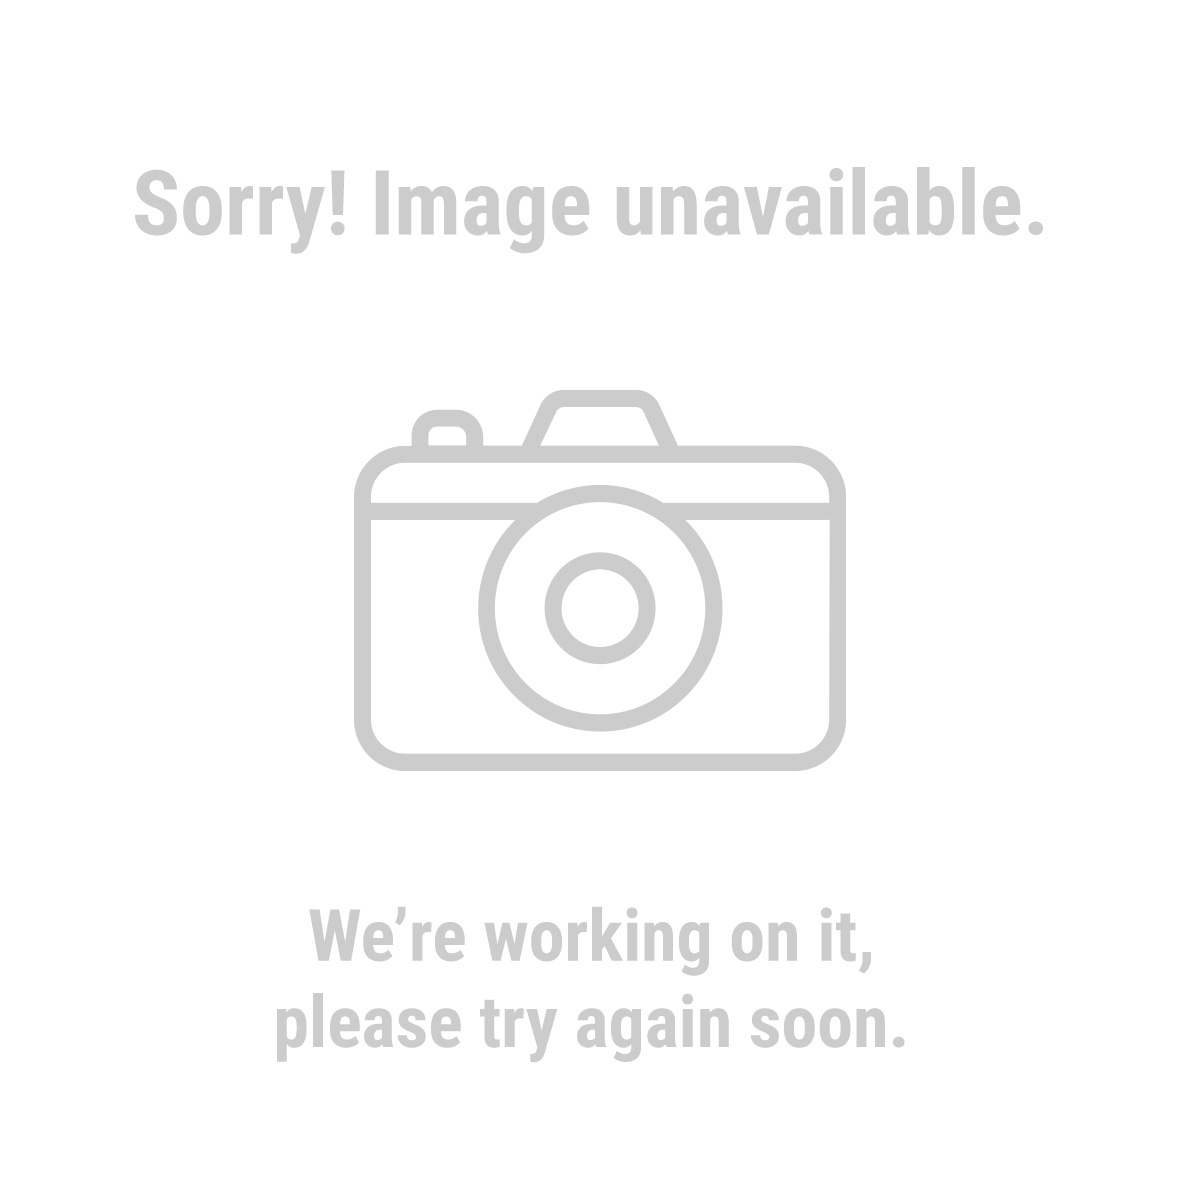 Pittsburgh 93943 4 Piece Laser Etched Adjustable Wrenches